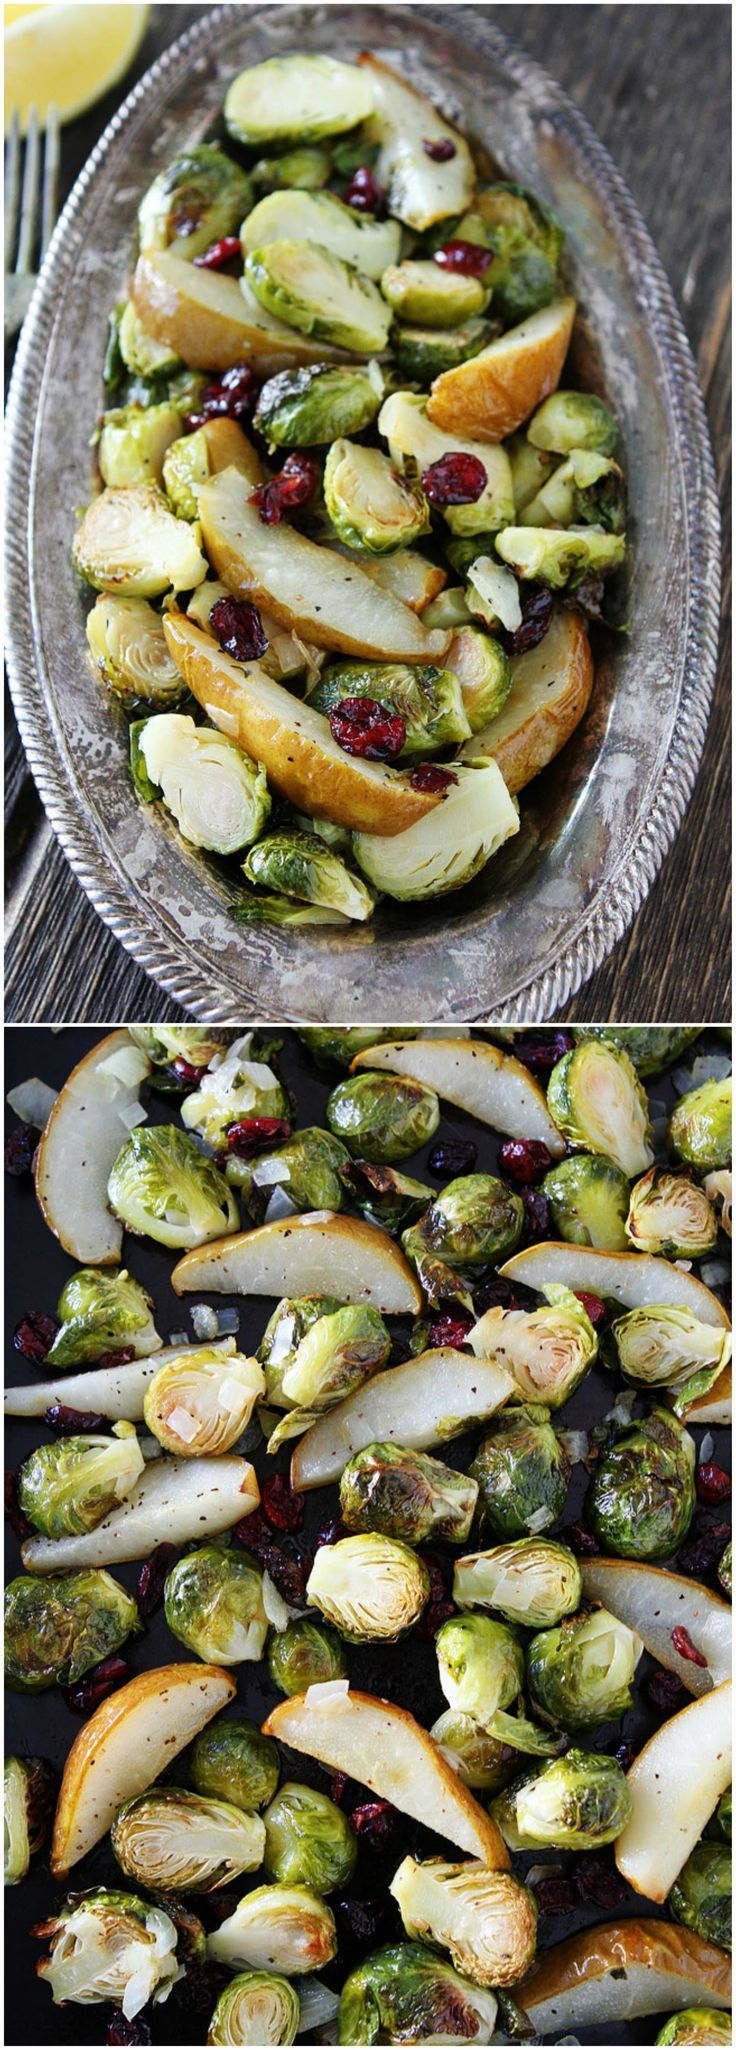 Roasted Pear and Cranberry Brussels Sprouts Recipe on http://twopeasandtheirpod.com These are the BEST Brussels Sprouts and the perfect side dish to any meal!